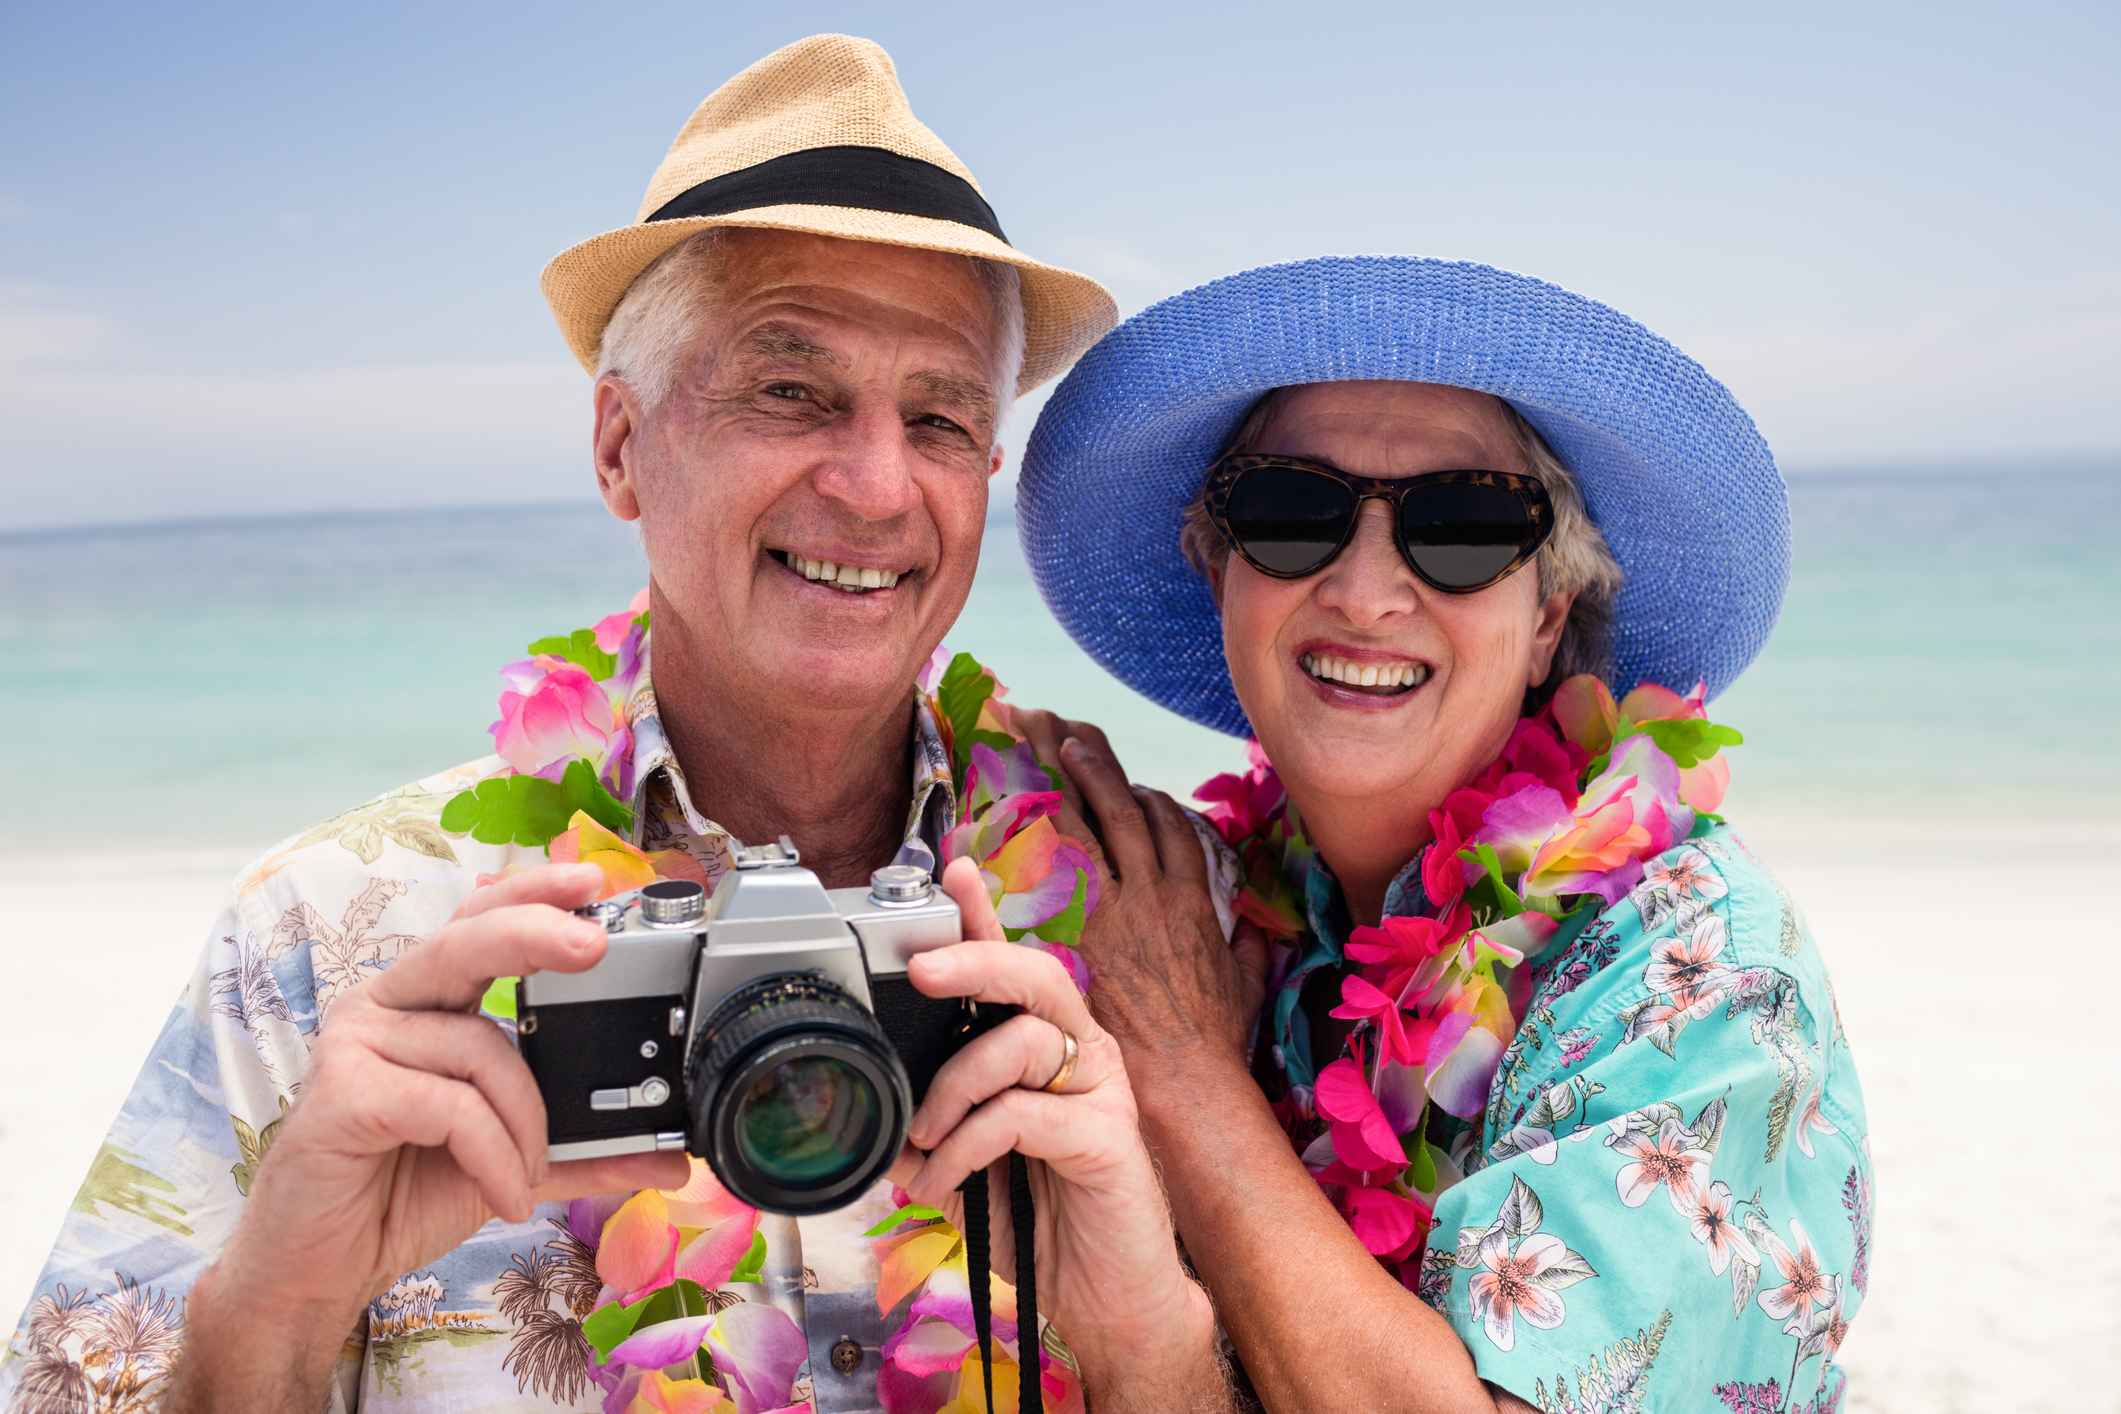 Senior couple clicking a photo with camera on the beach